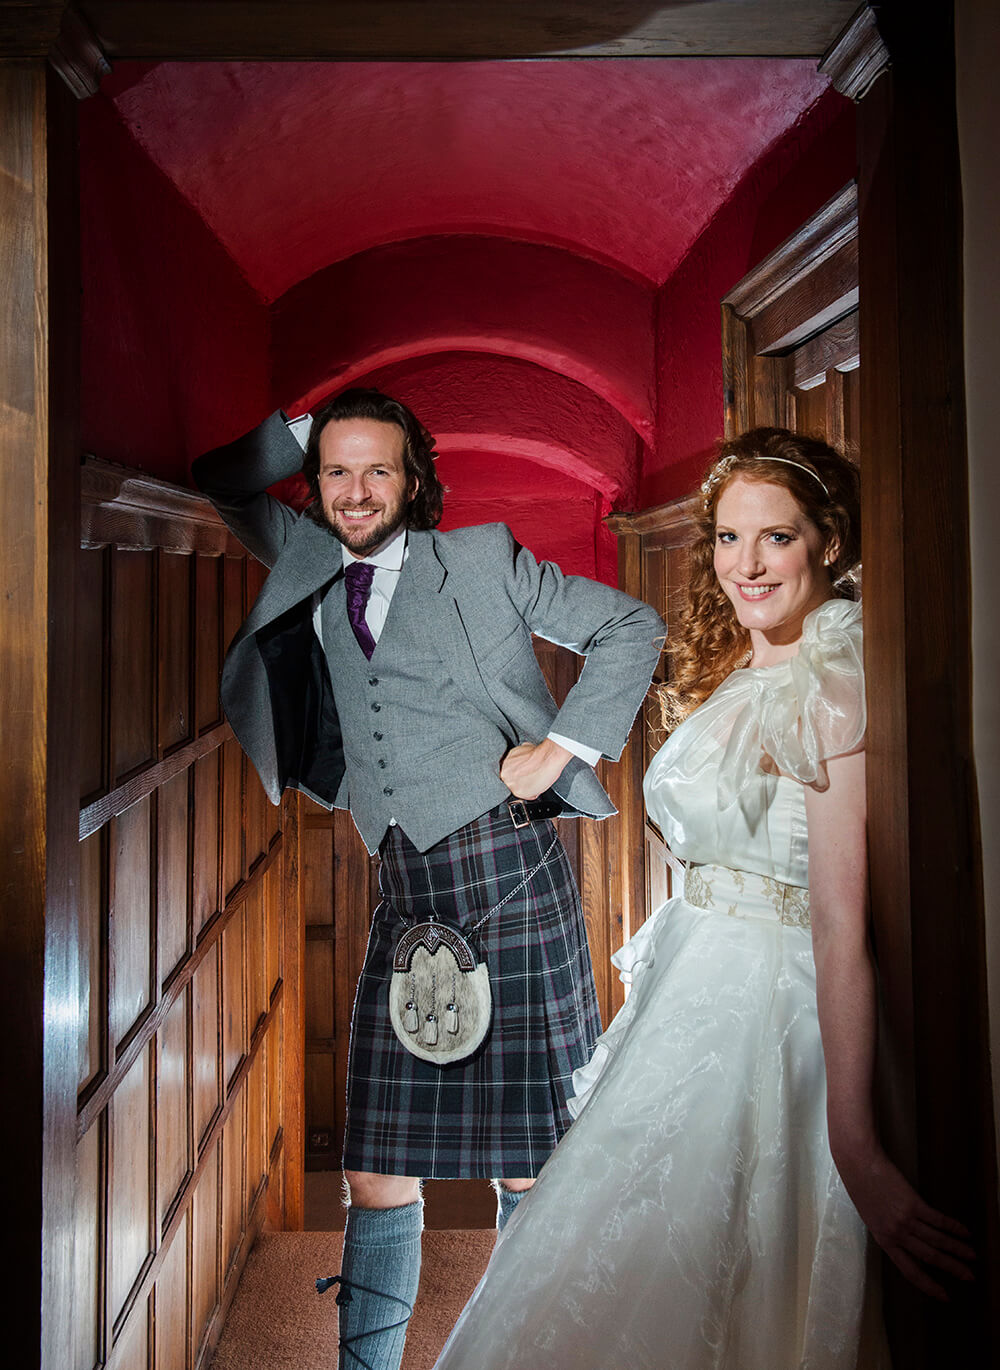 Soon Castle has lots of possibilities for wedding photography. This narrow corridor is ideal for relaxed portraits. Photography by Ayrshire Wedding Photographer Richard Campbell